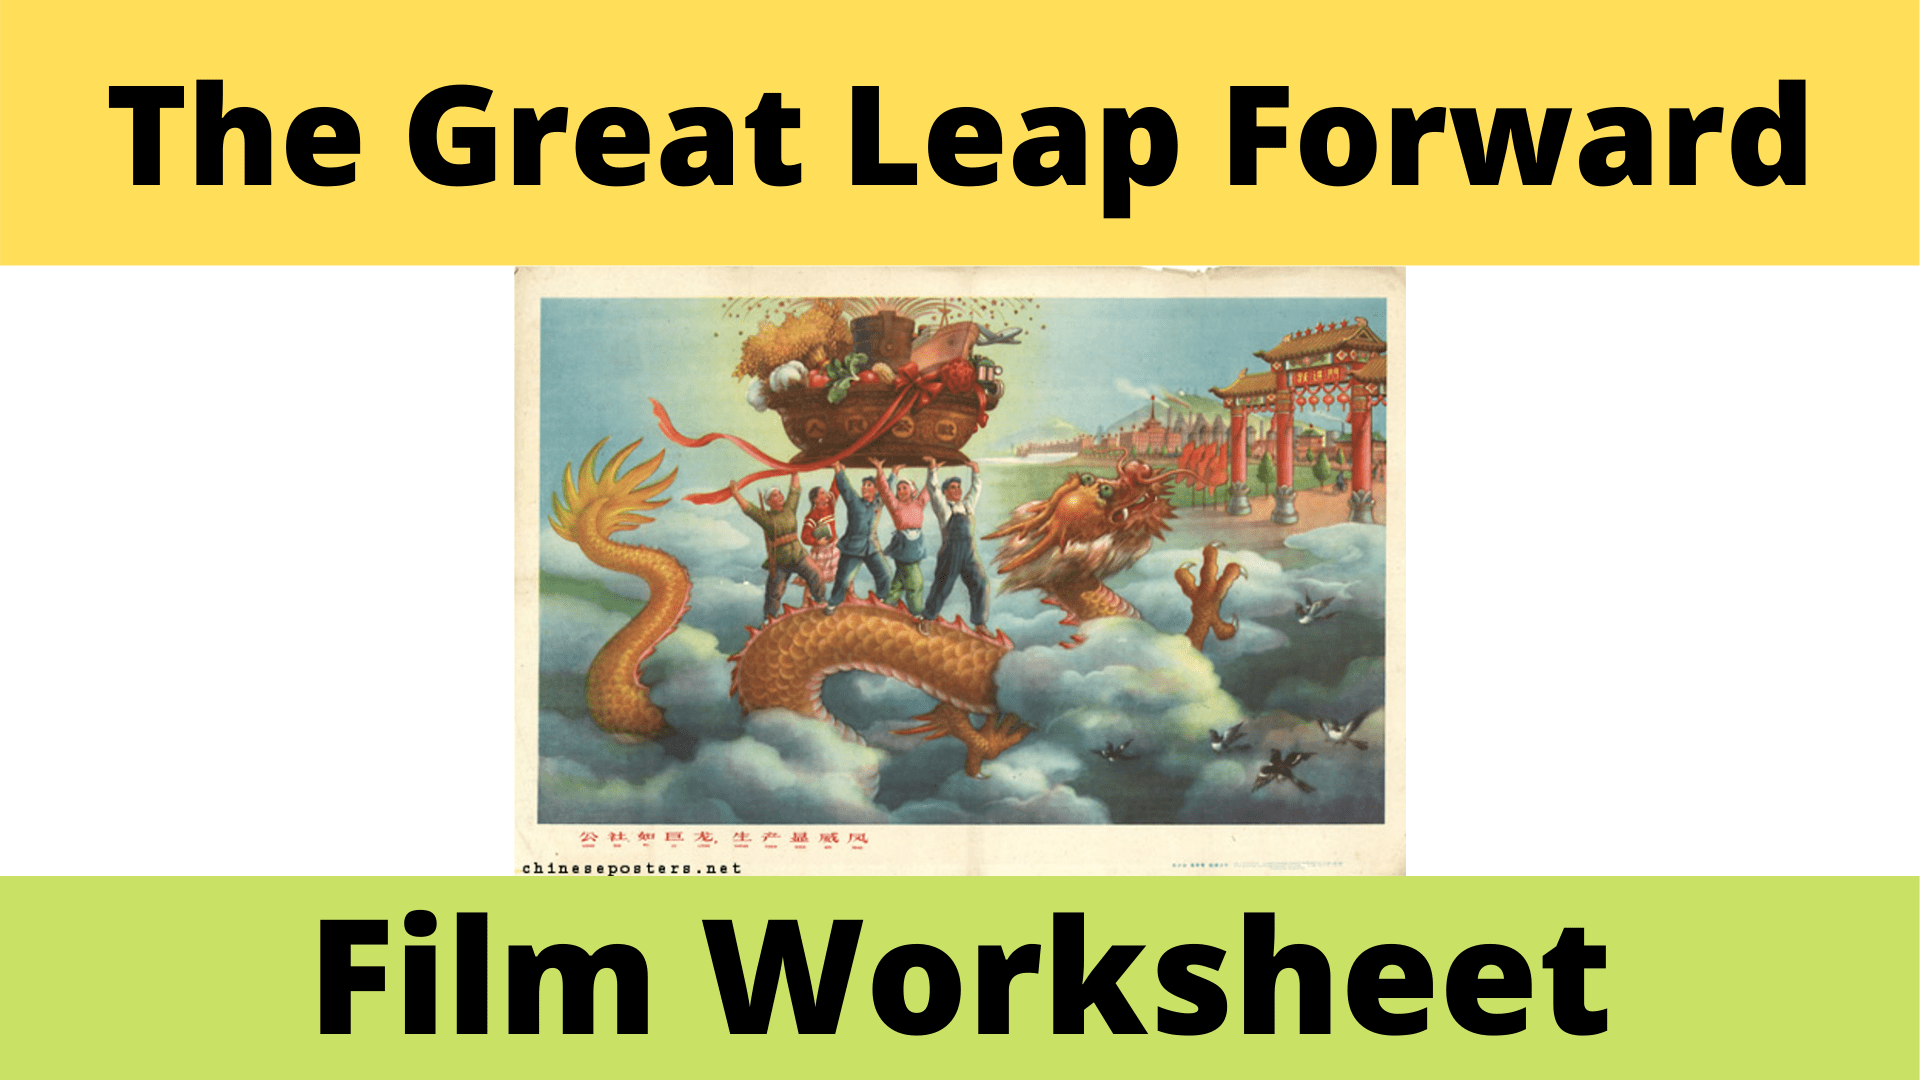 The Great Leap Forward Film Worksheet